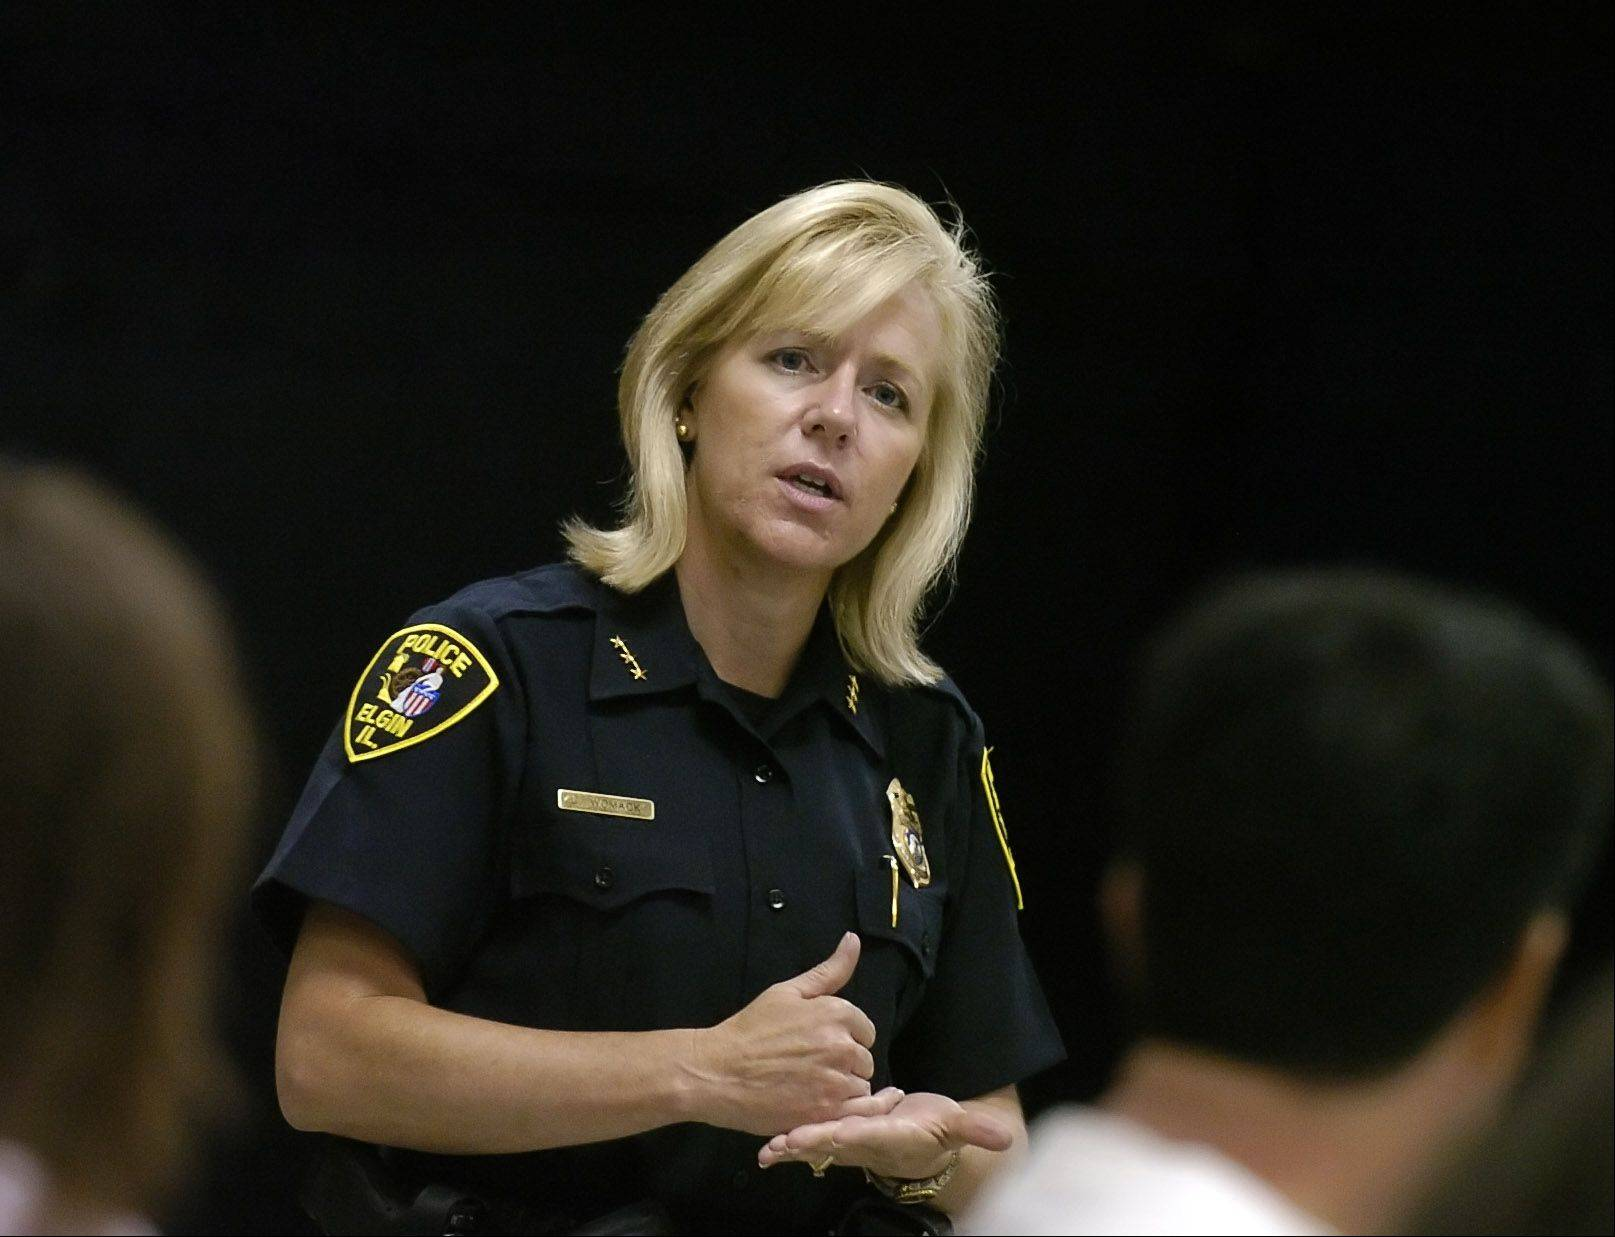 Former Elgin Police Chief Lisa Womack has been placed on leave from the police department in Lakeland, Fla., where she is schedule to resign as chief on May 1.